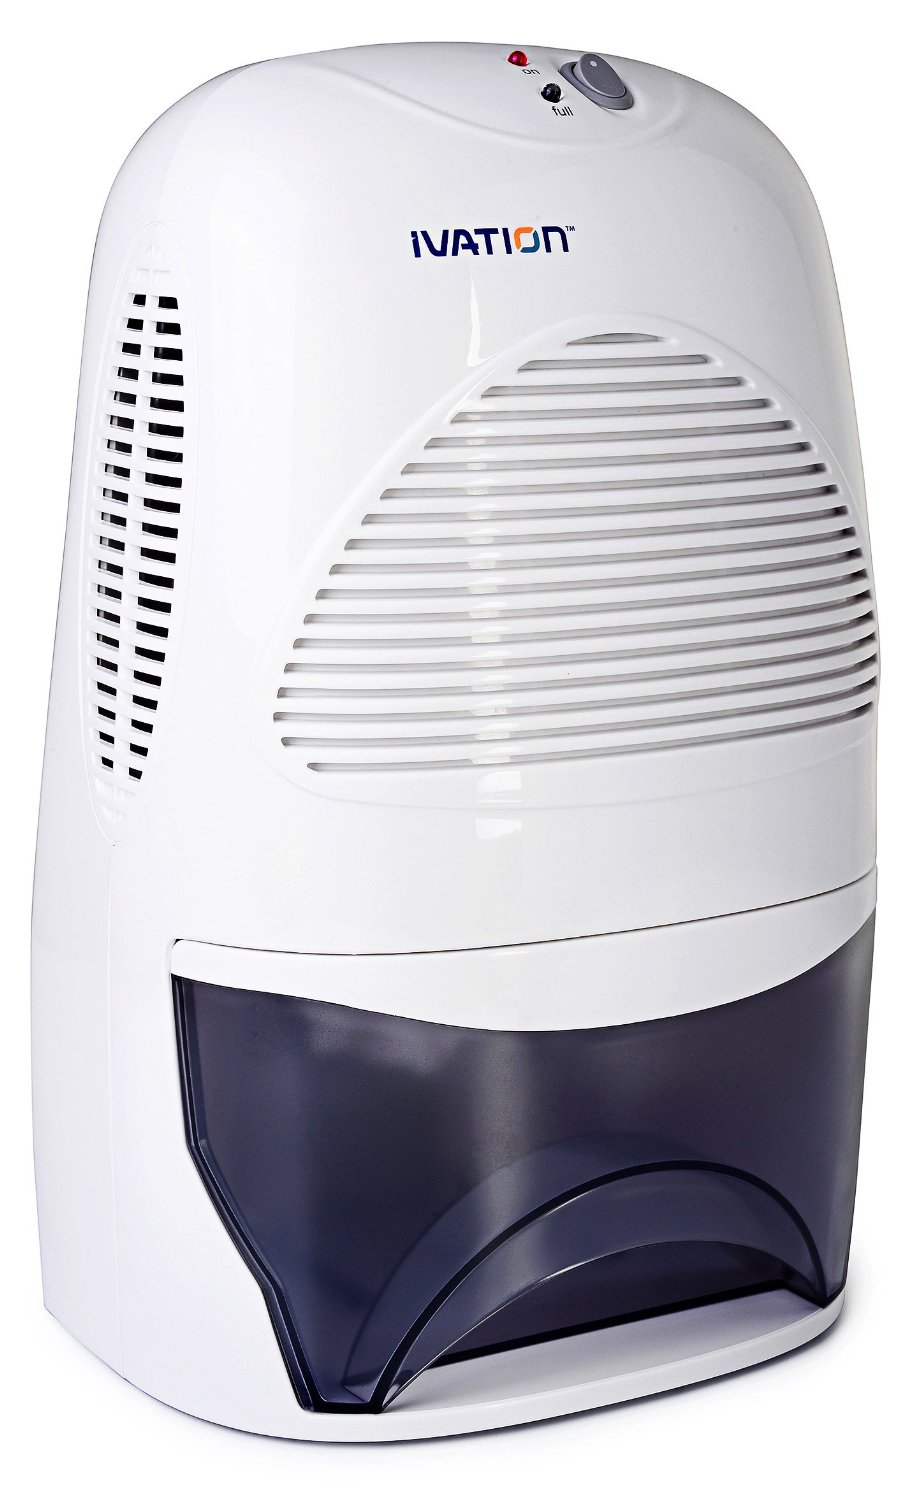 quiet humidifier review ivation powerful mid size thermo electric